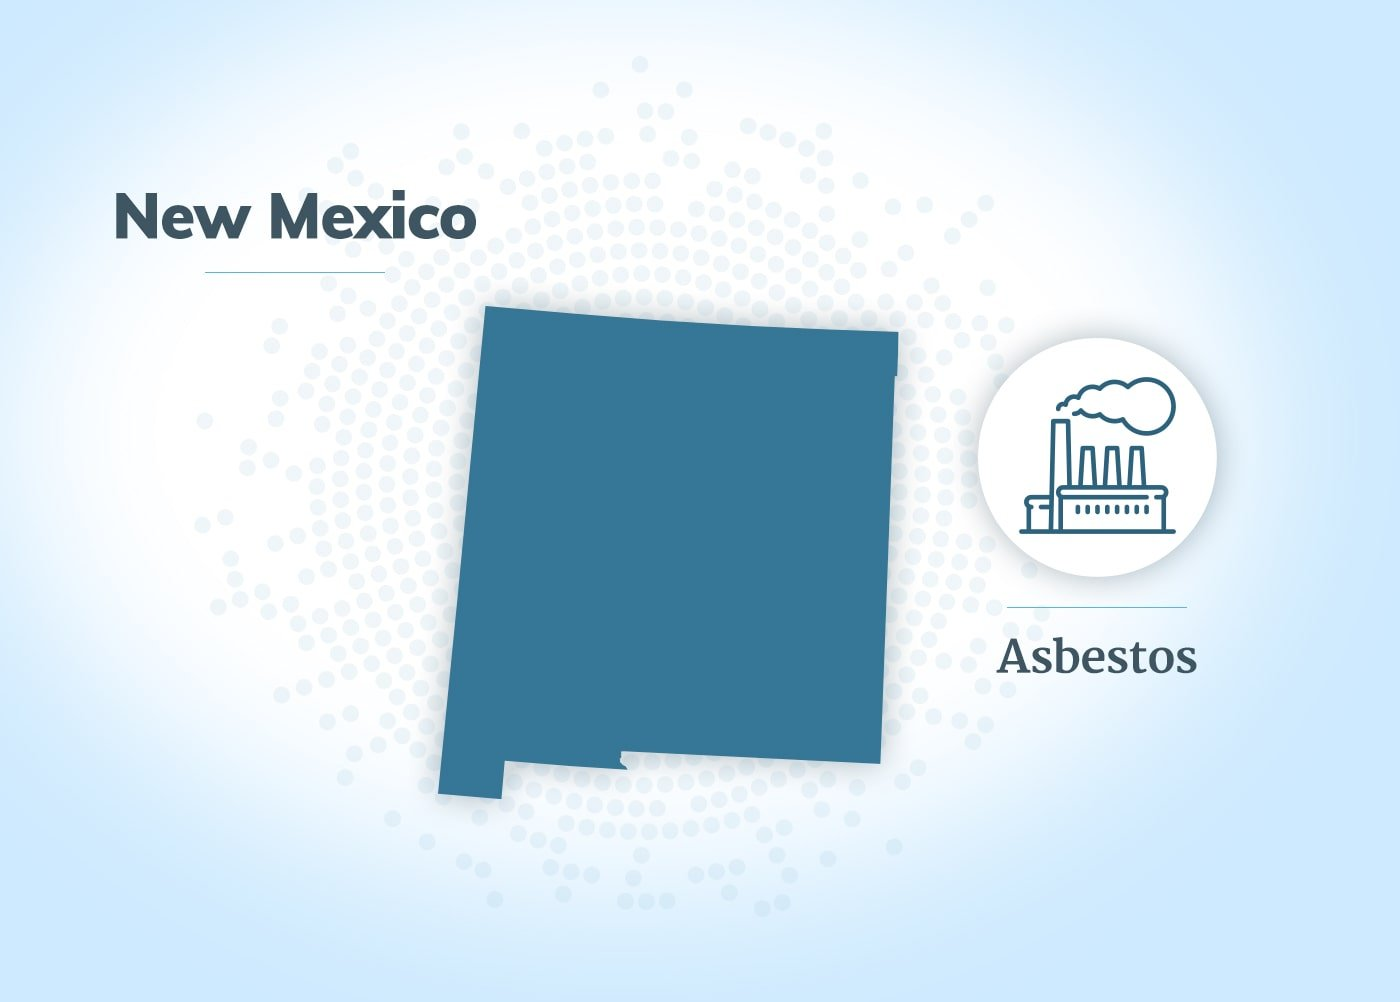 Asbestos exposure in New Mexico